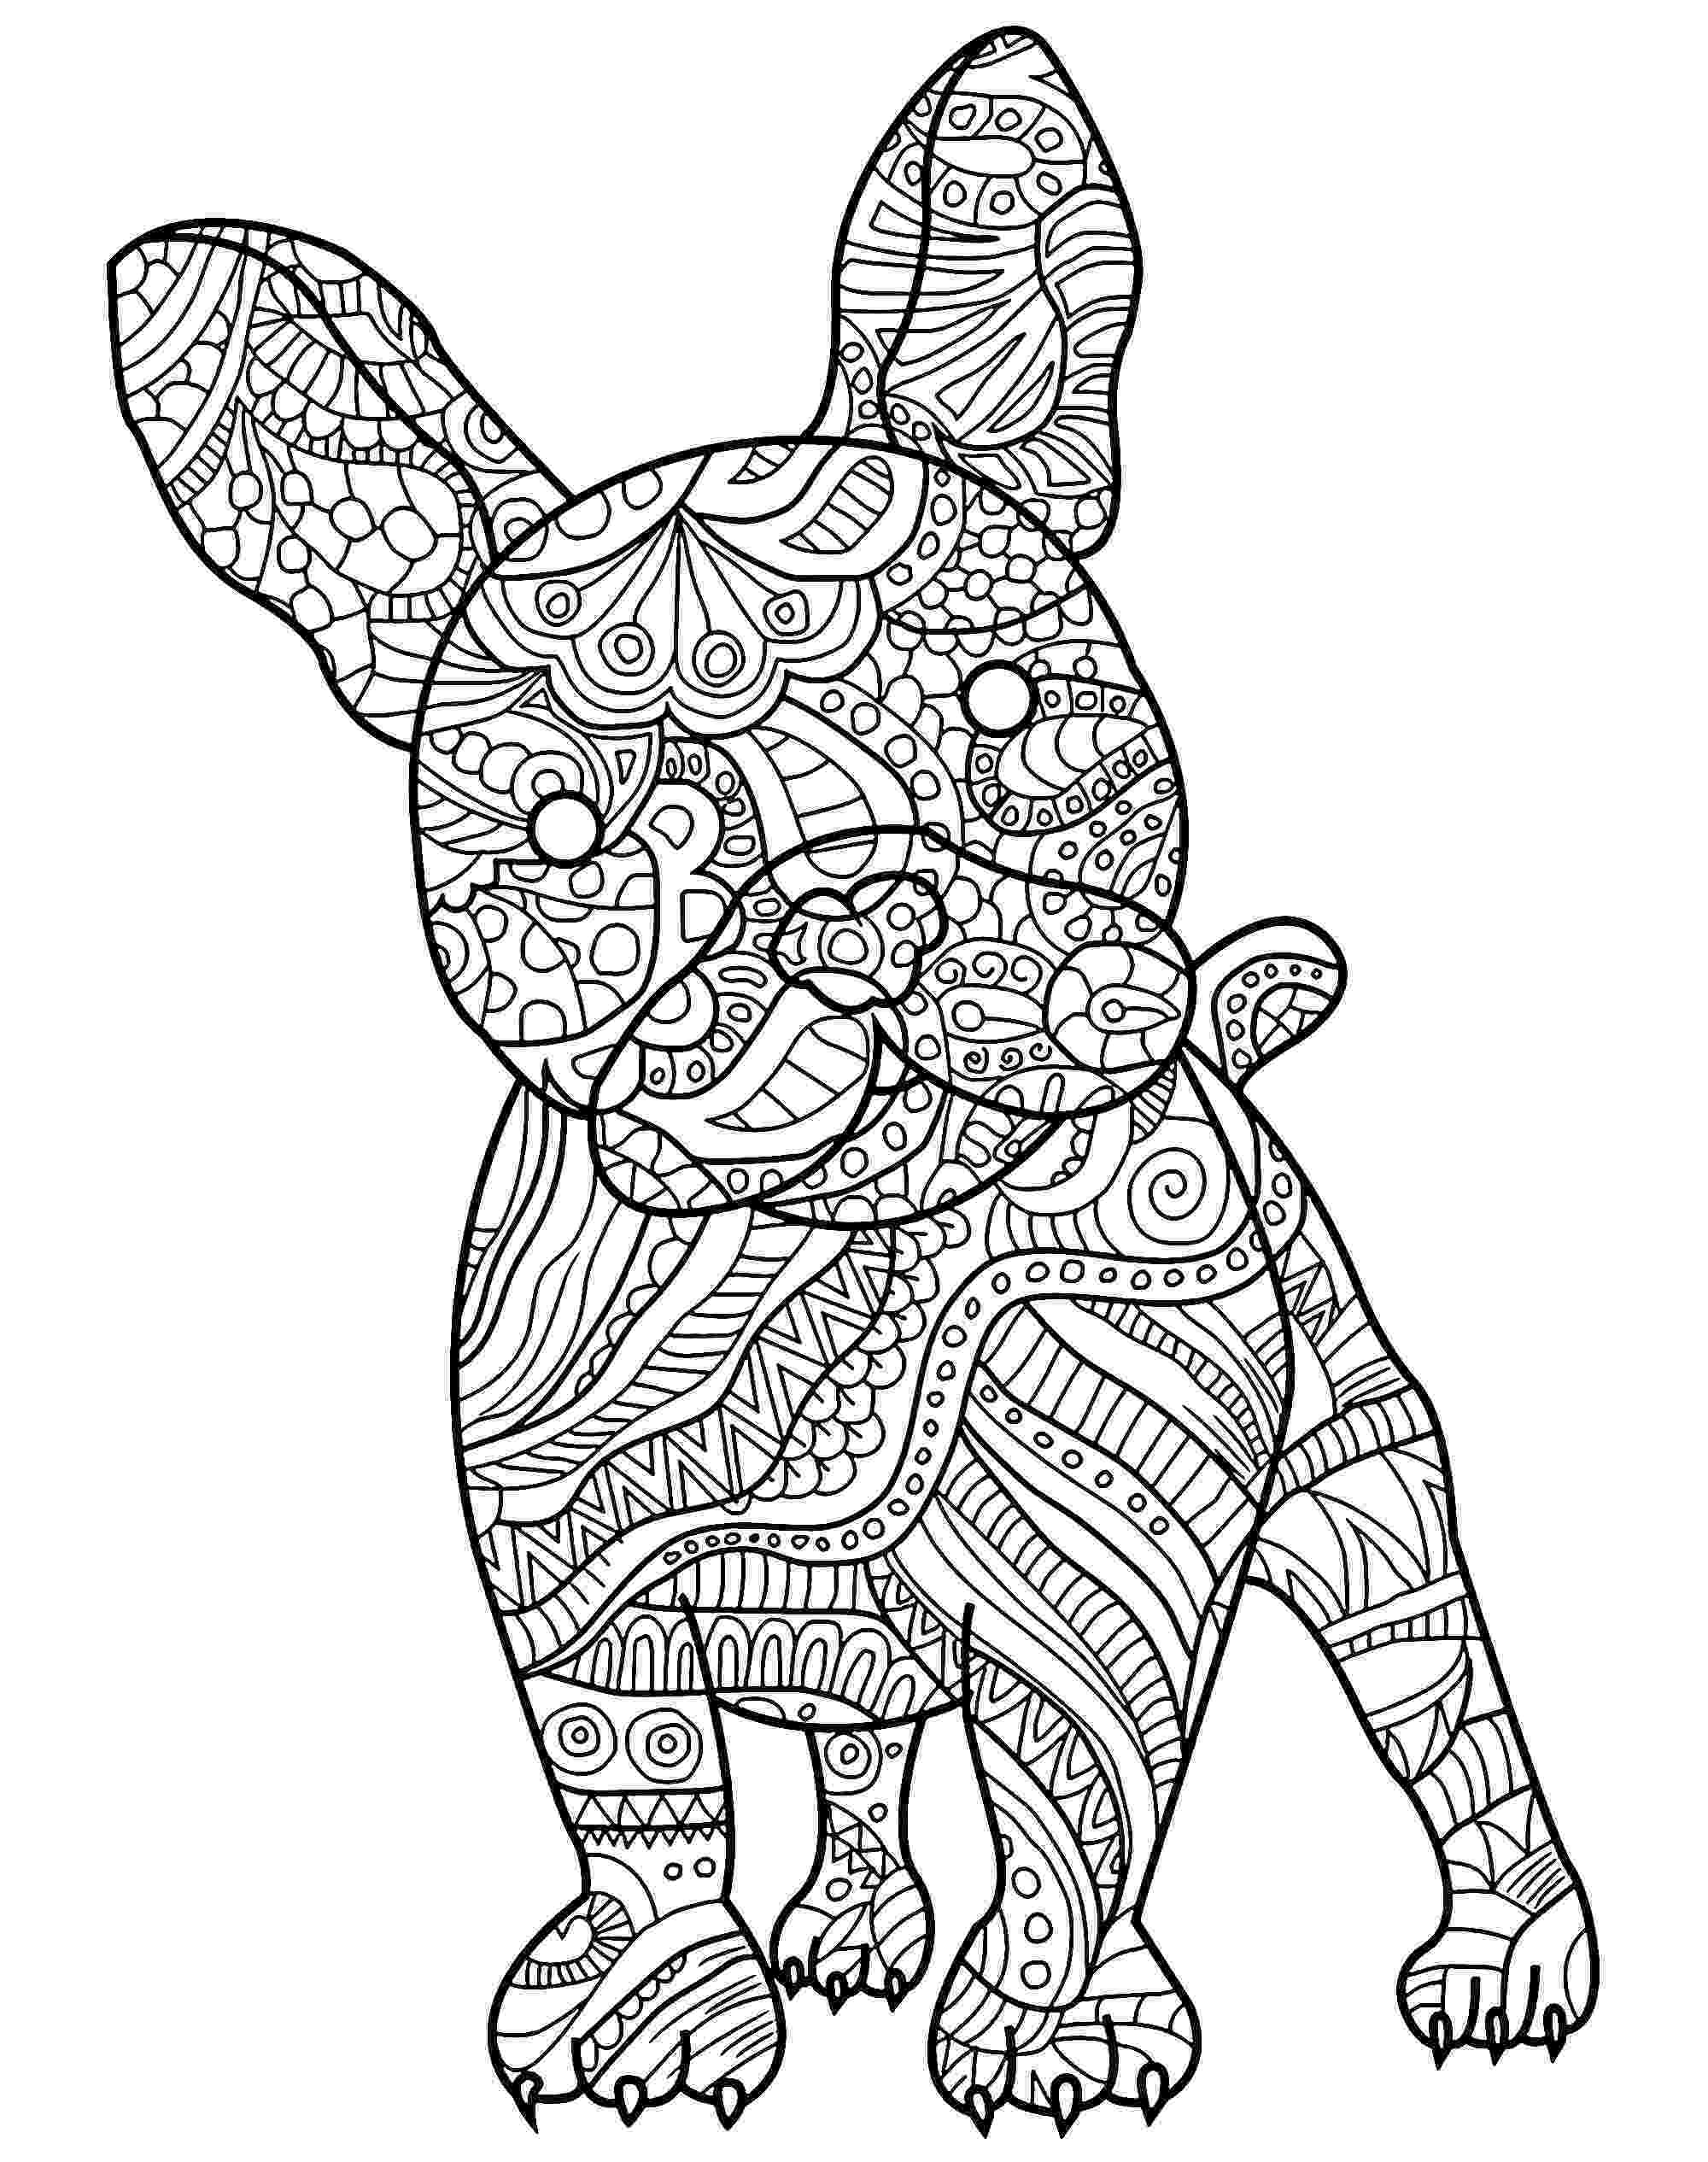 coloring pages to print dogs cute dog coloring pages to download and print for free print pages to dogs coloring